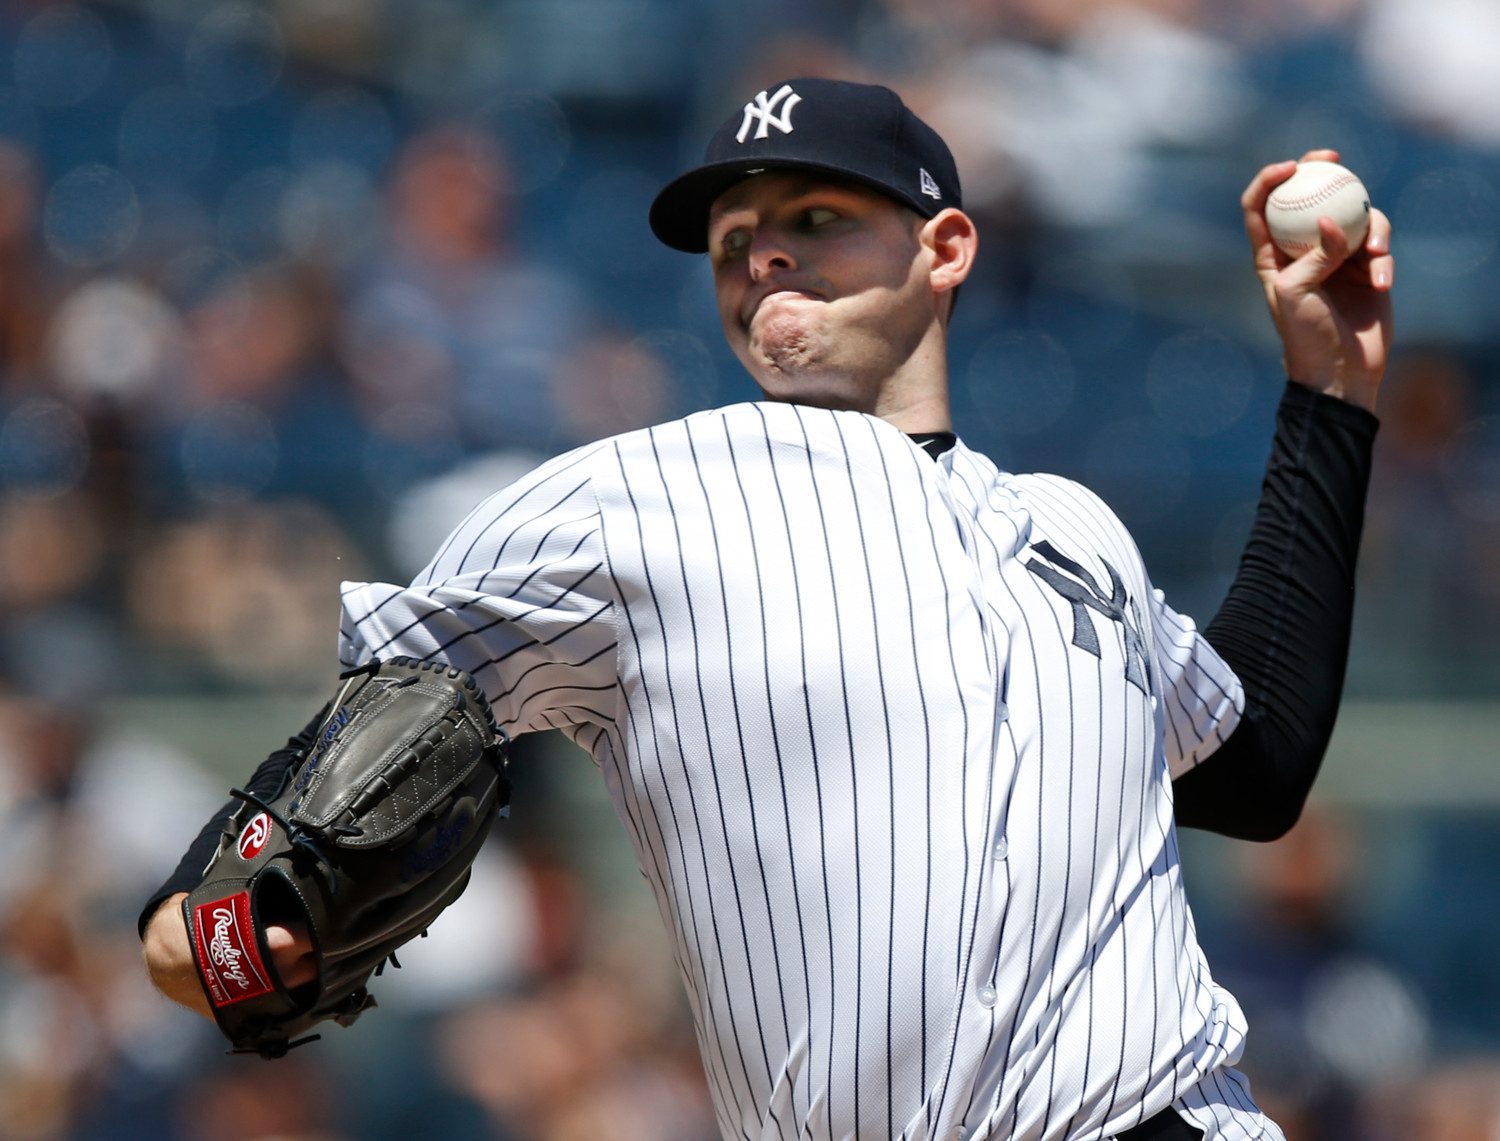 New York Yankees starting pitcher Jordan Montgomery is partnering Reach Out & Read Carolinas to help supply books in four Reach Out & Read clinics.